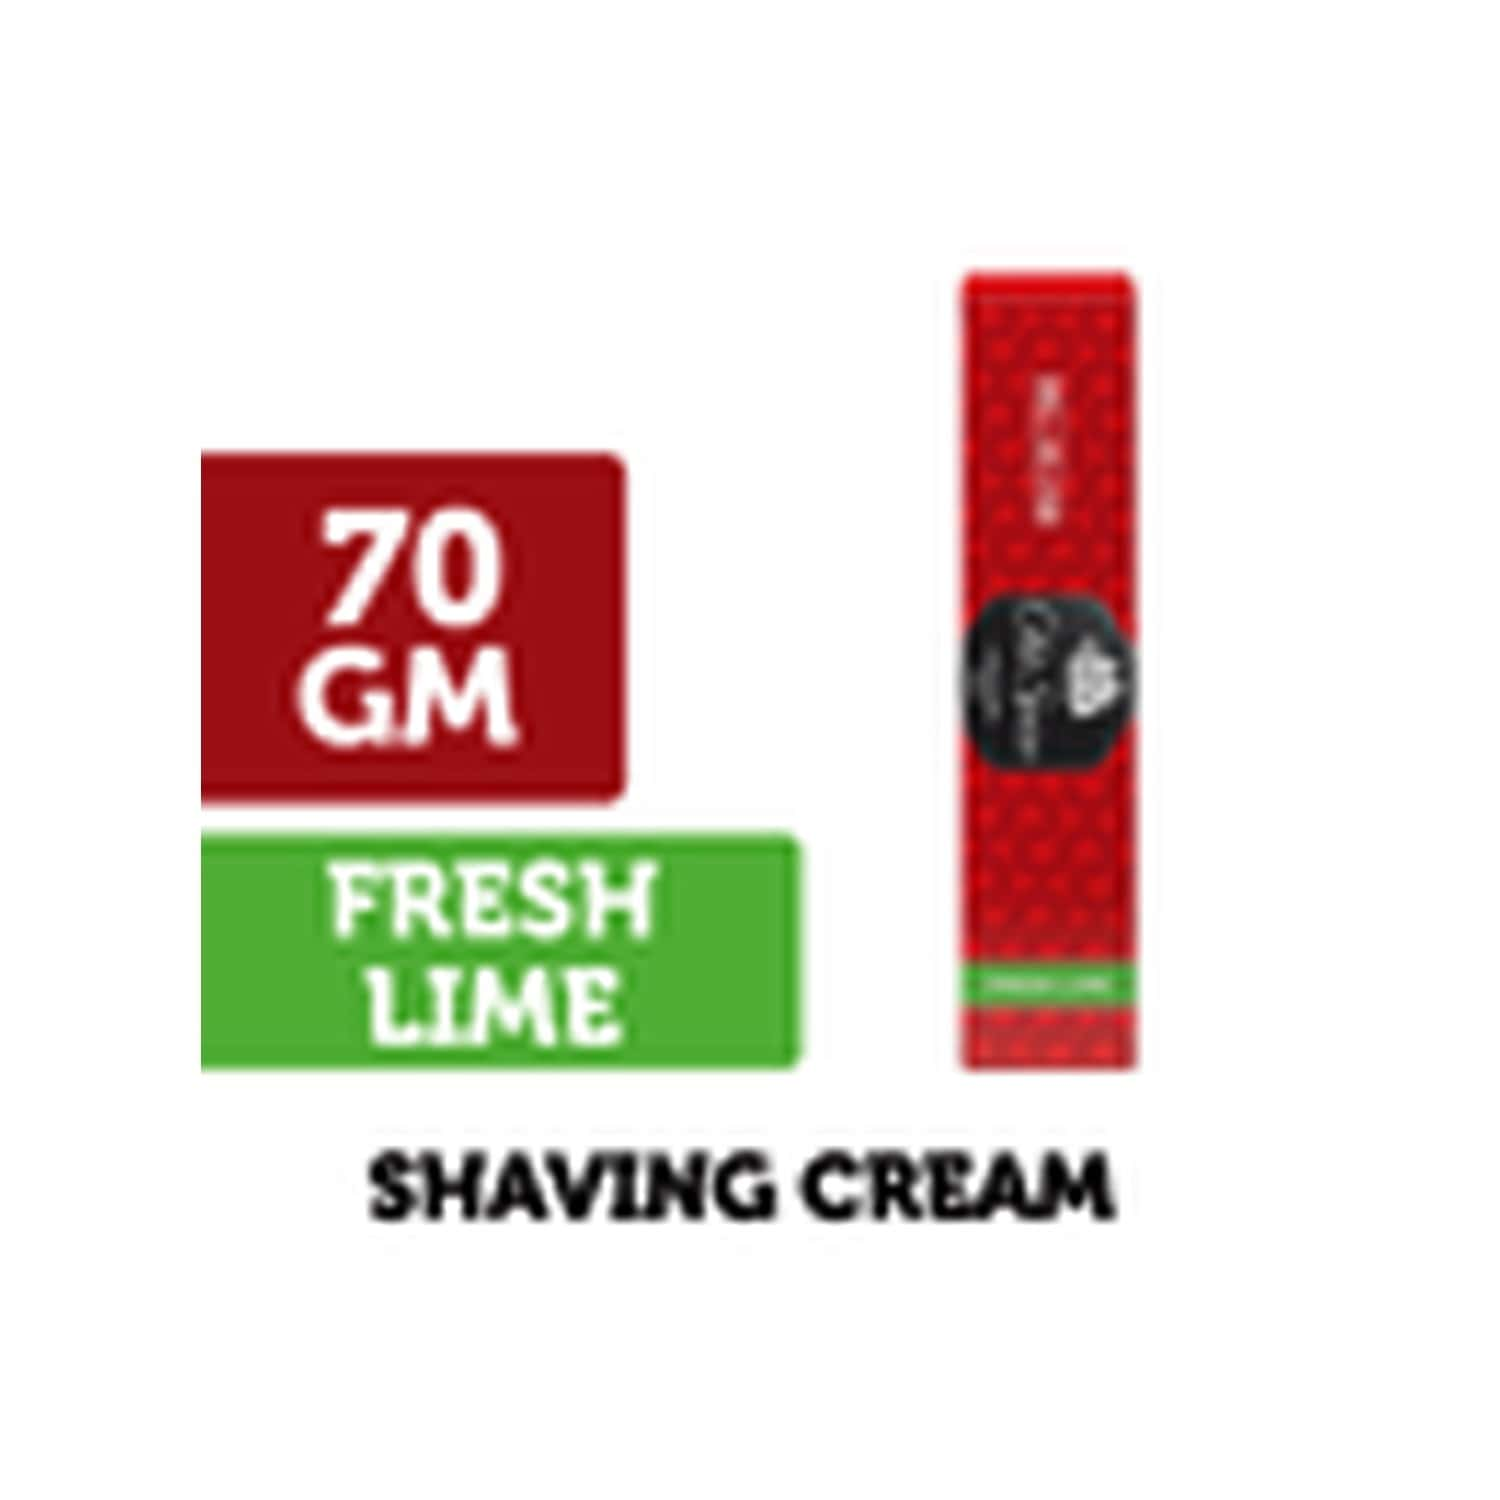 Old Spice Fresh Lime Pre Shave Cream - 70g